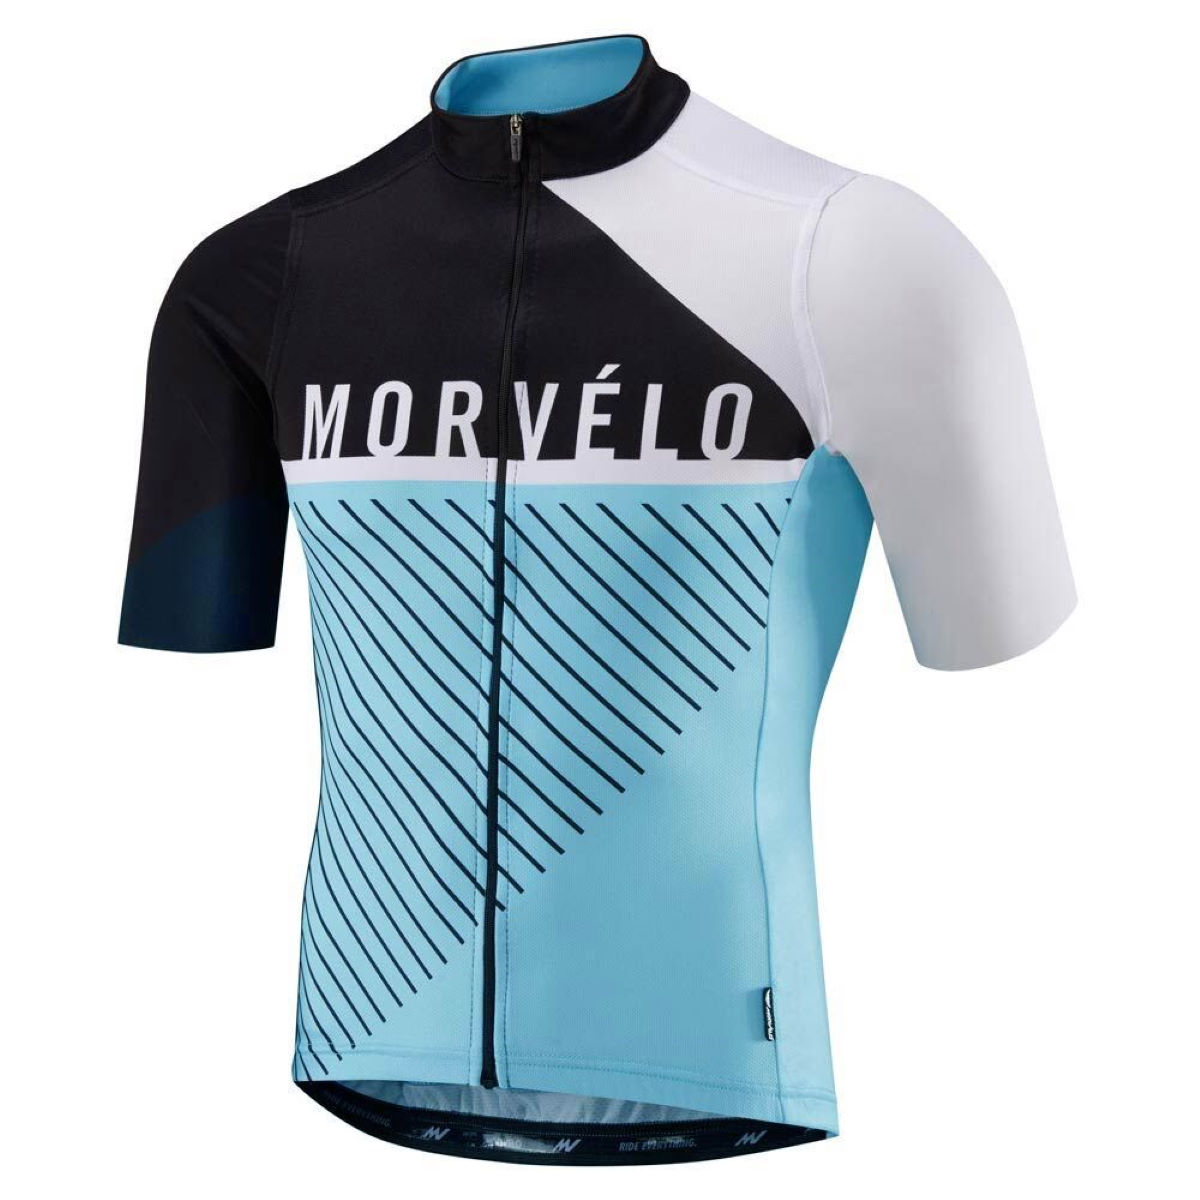 Maillot Morvelo Pact (manches courtes) - S Pact